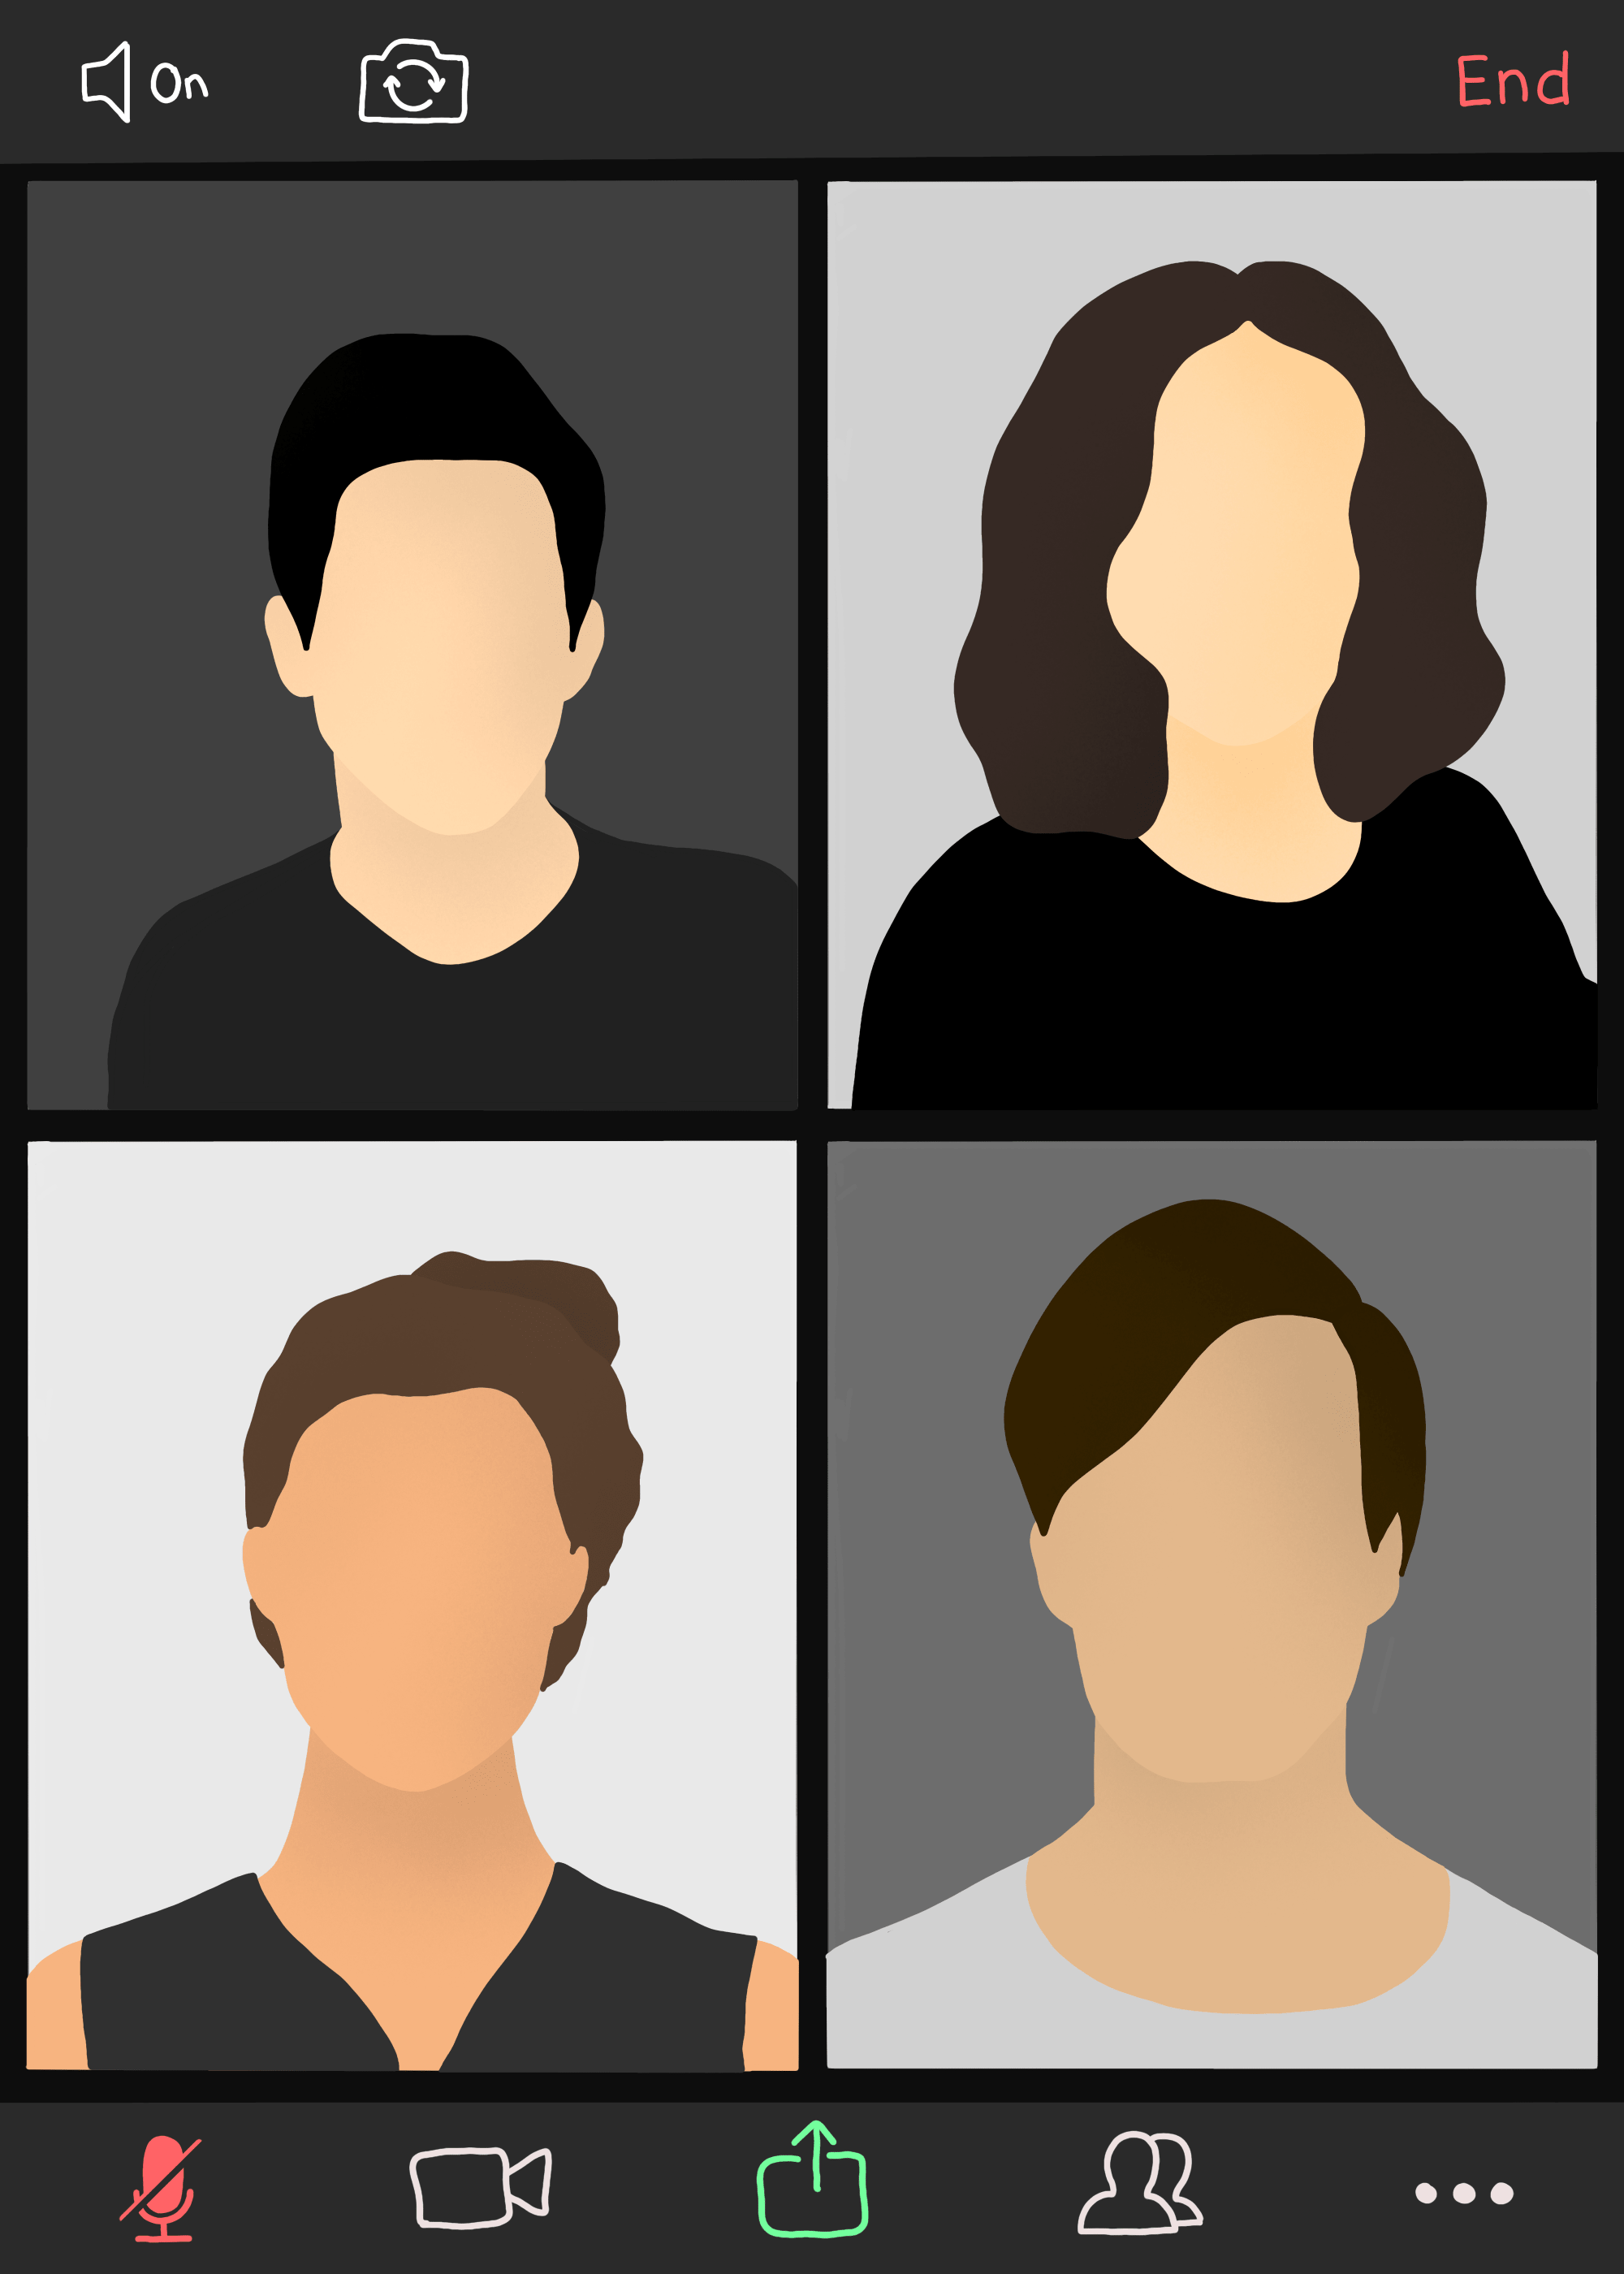 Illustrated heads from four different people in a video conference window.